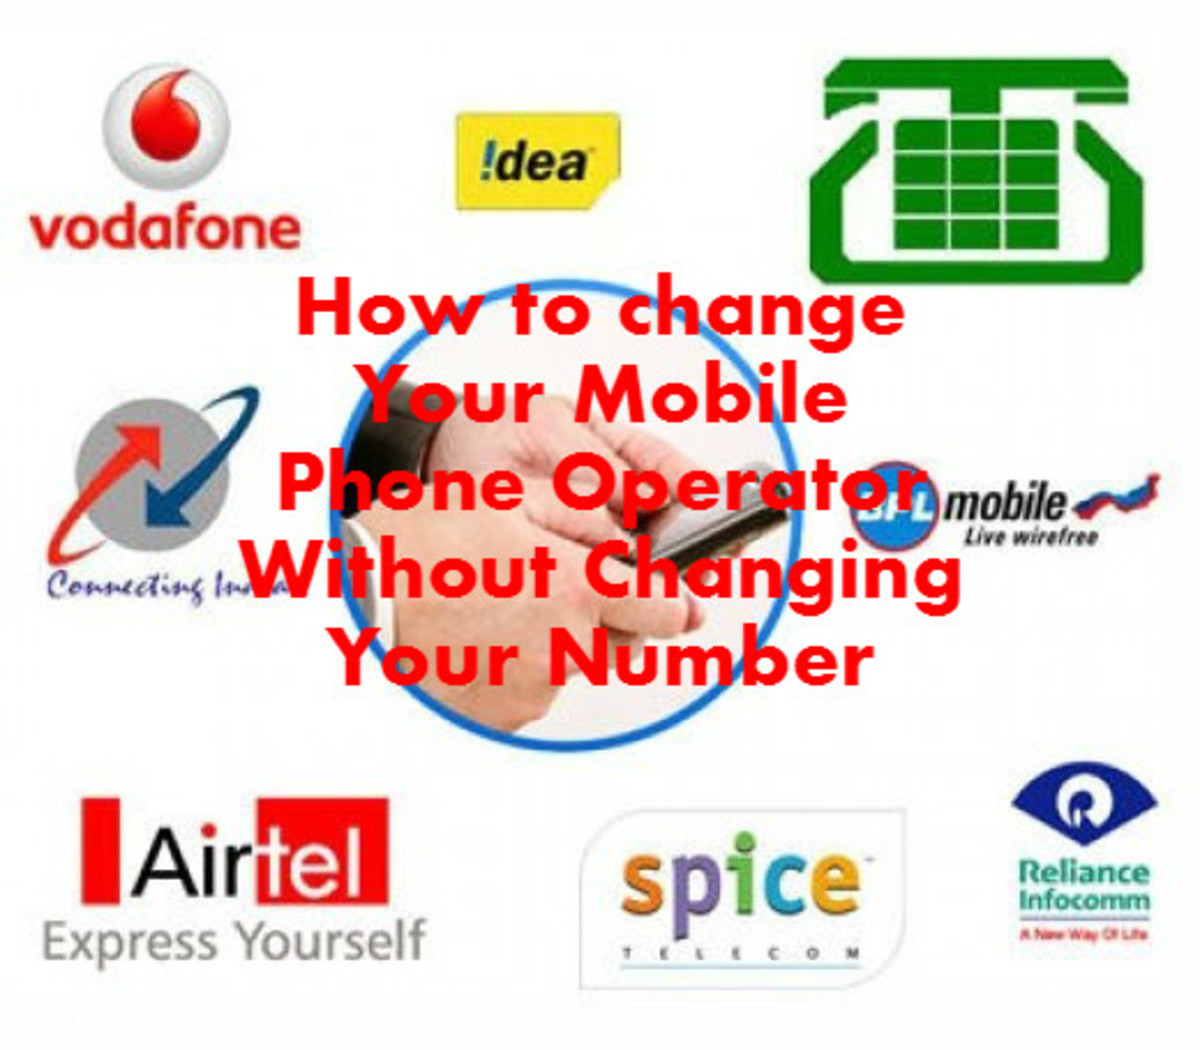 How to Change Your Service/Network Provider Without Changing Your Number - Pan-India Mobile Number Portability